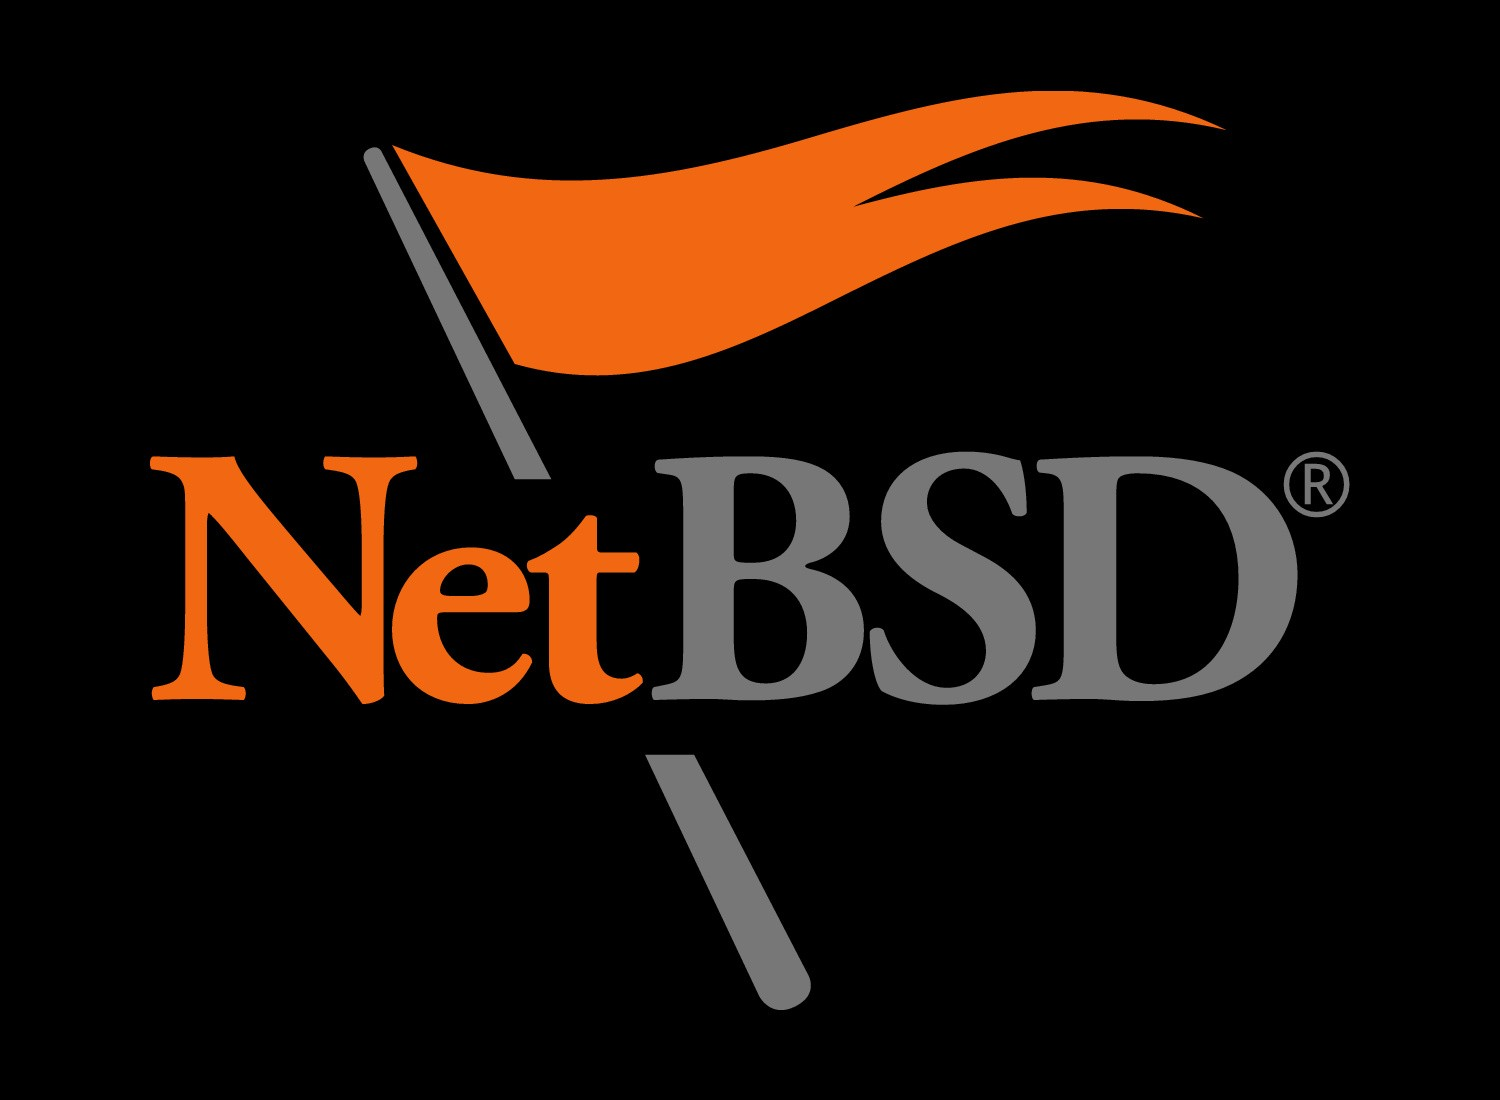 NetBSD 7 1 Is Out with Support for Raspberry Pi Zero, Better Linux